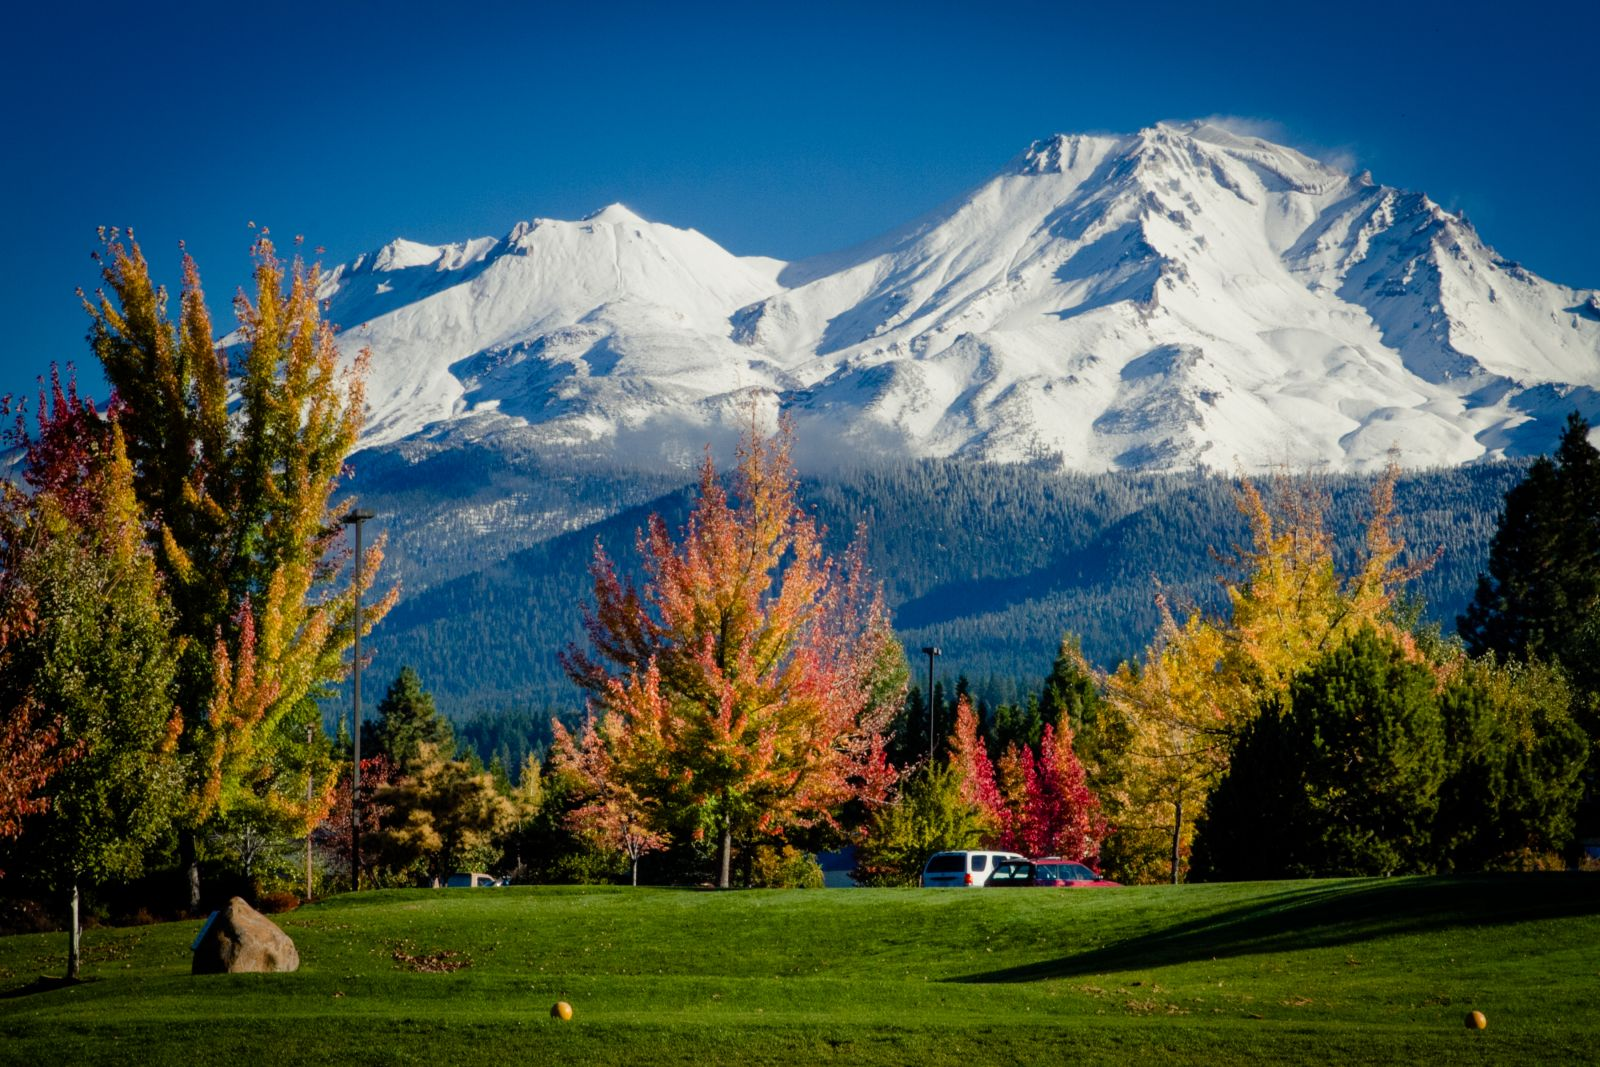 Mount Shasta view from Resort